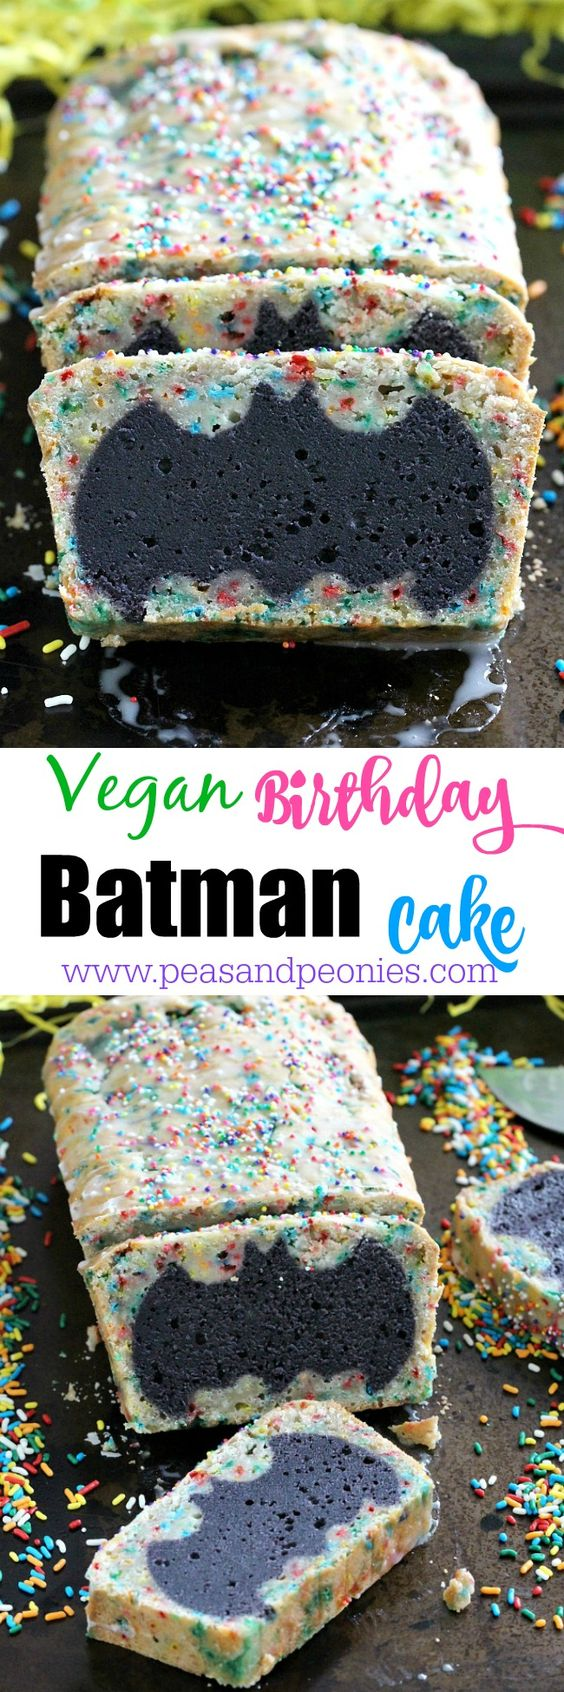 Easy to make Vegan Batman Cake is fun for the kids and adults. Easy ingredients for a fun, delicious cake for your next celebration. Peas and Peonies